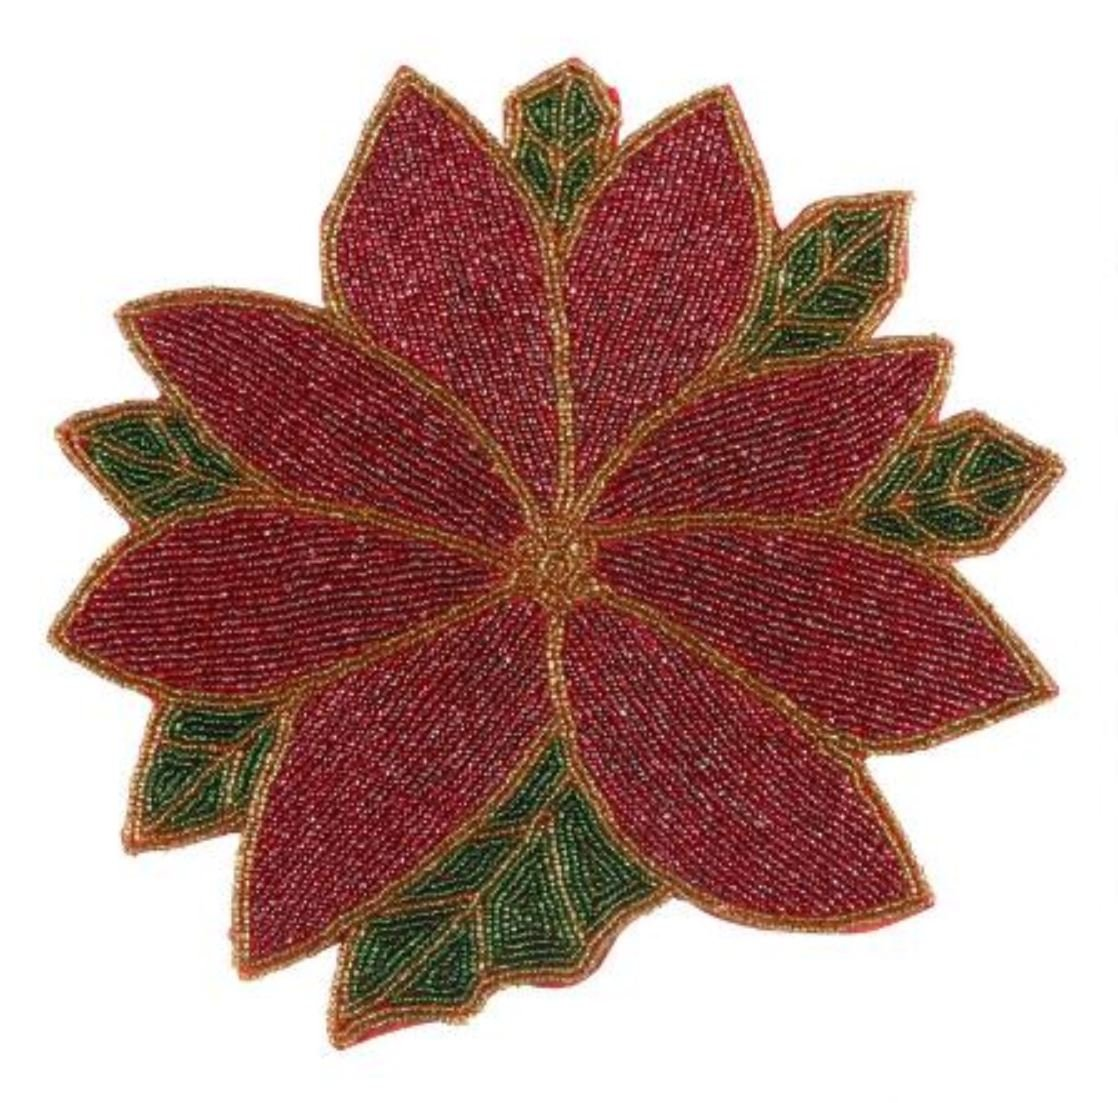 Christmas Tablescape Décor - Red and green poinsettia detailed beadwork placemats - Set of 2 by Nantucket Home